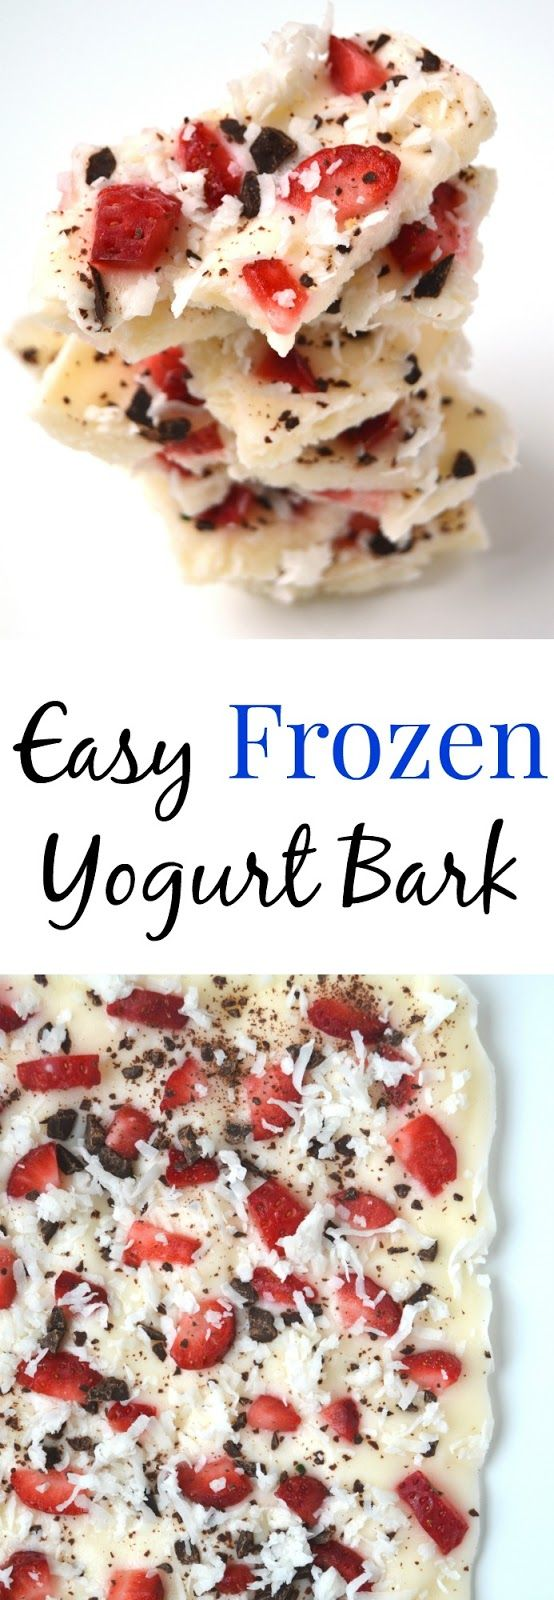 Yogurt Bark – Low Carb